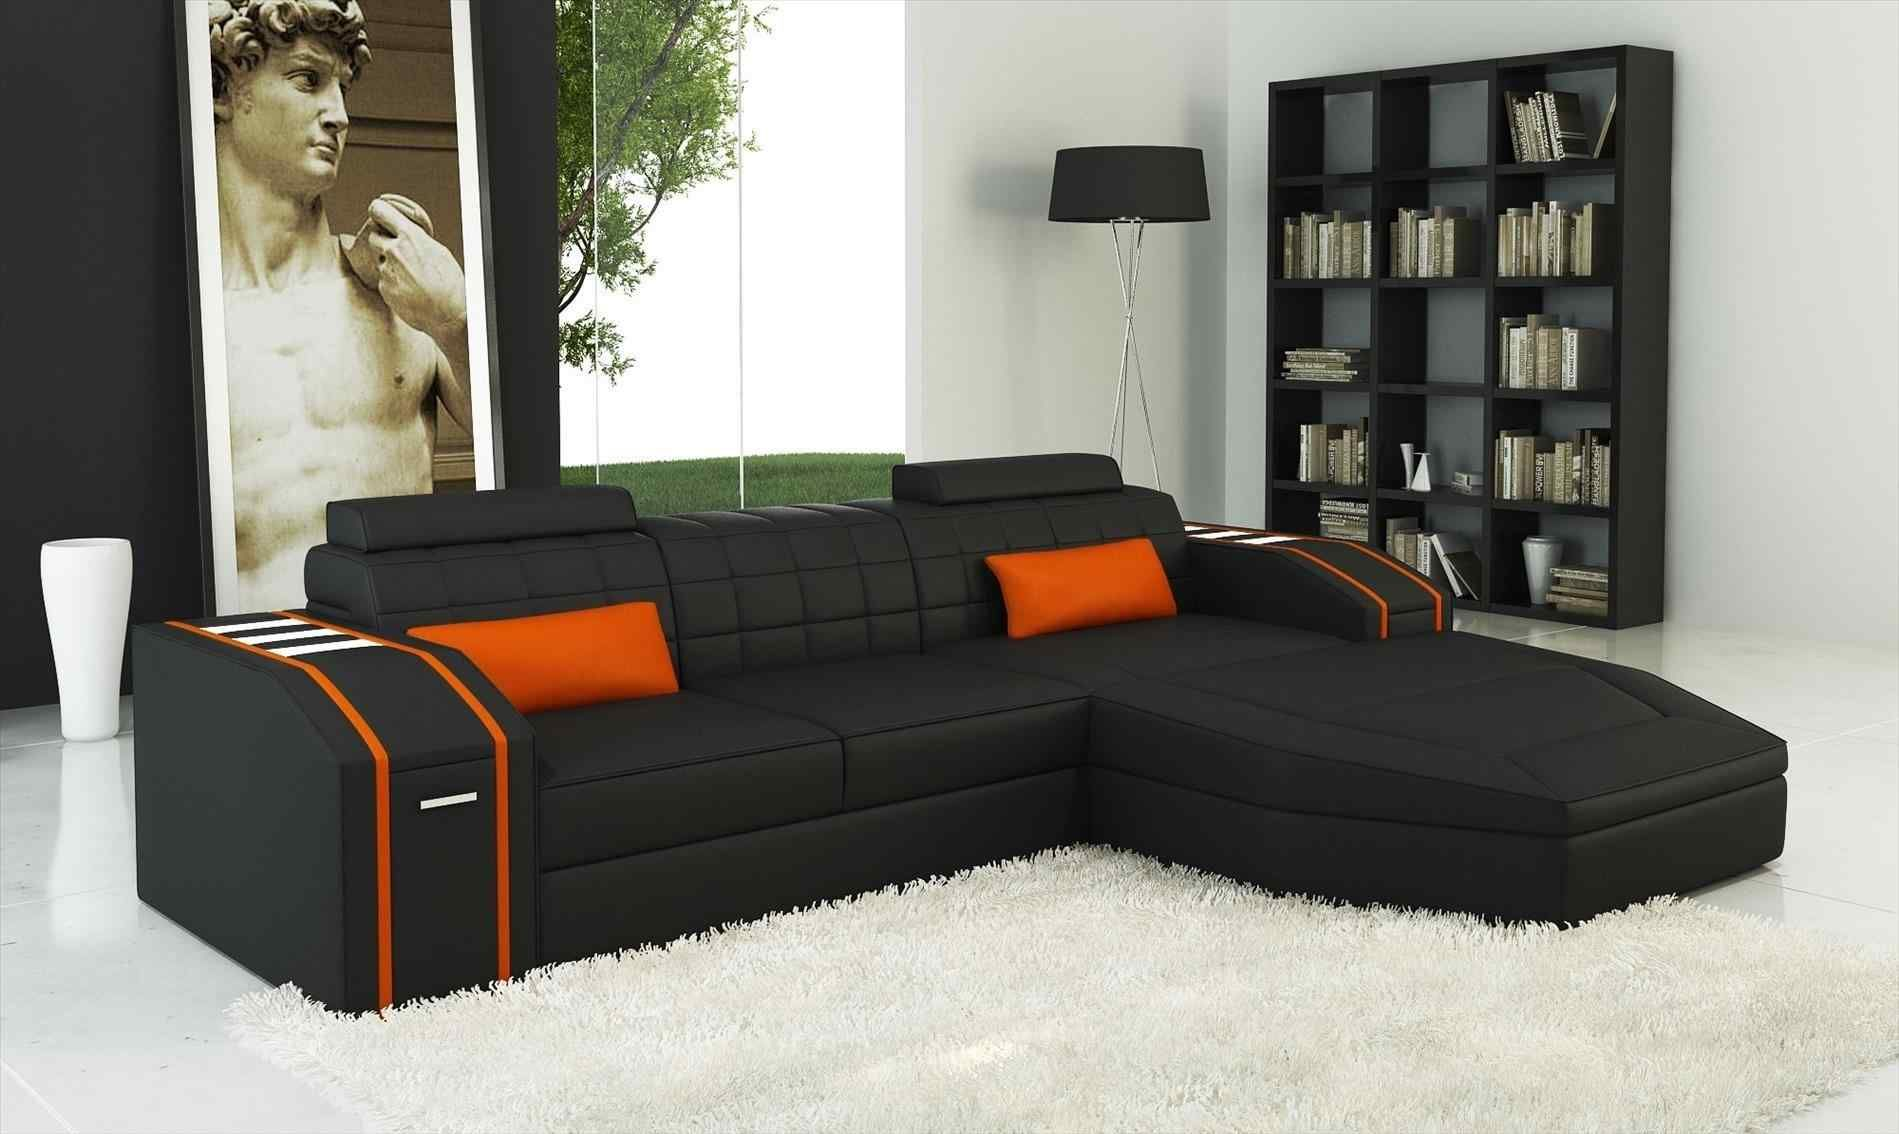 most popular living room furniture ideas on affordable sectional sofa with black and orange leather colors combination also adjustable headrest chaise